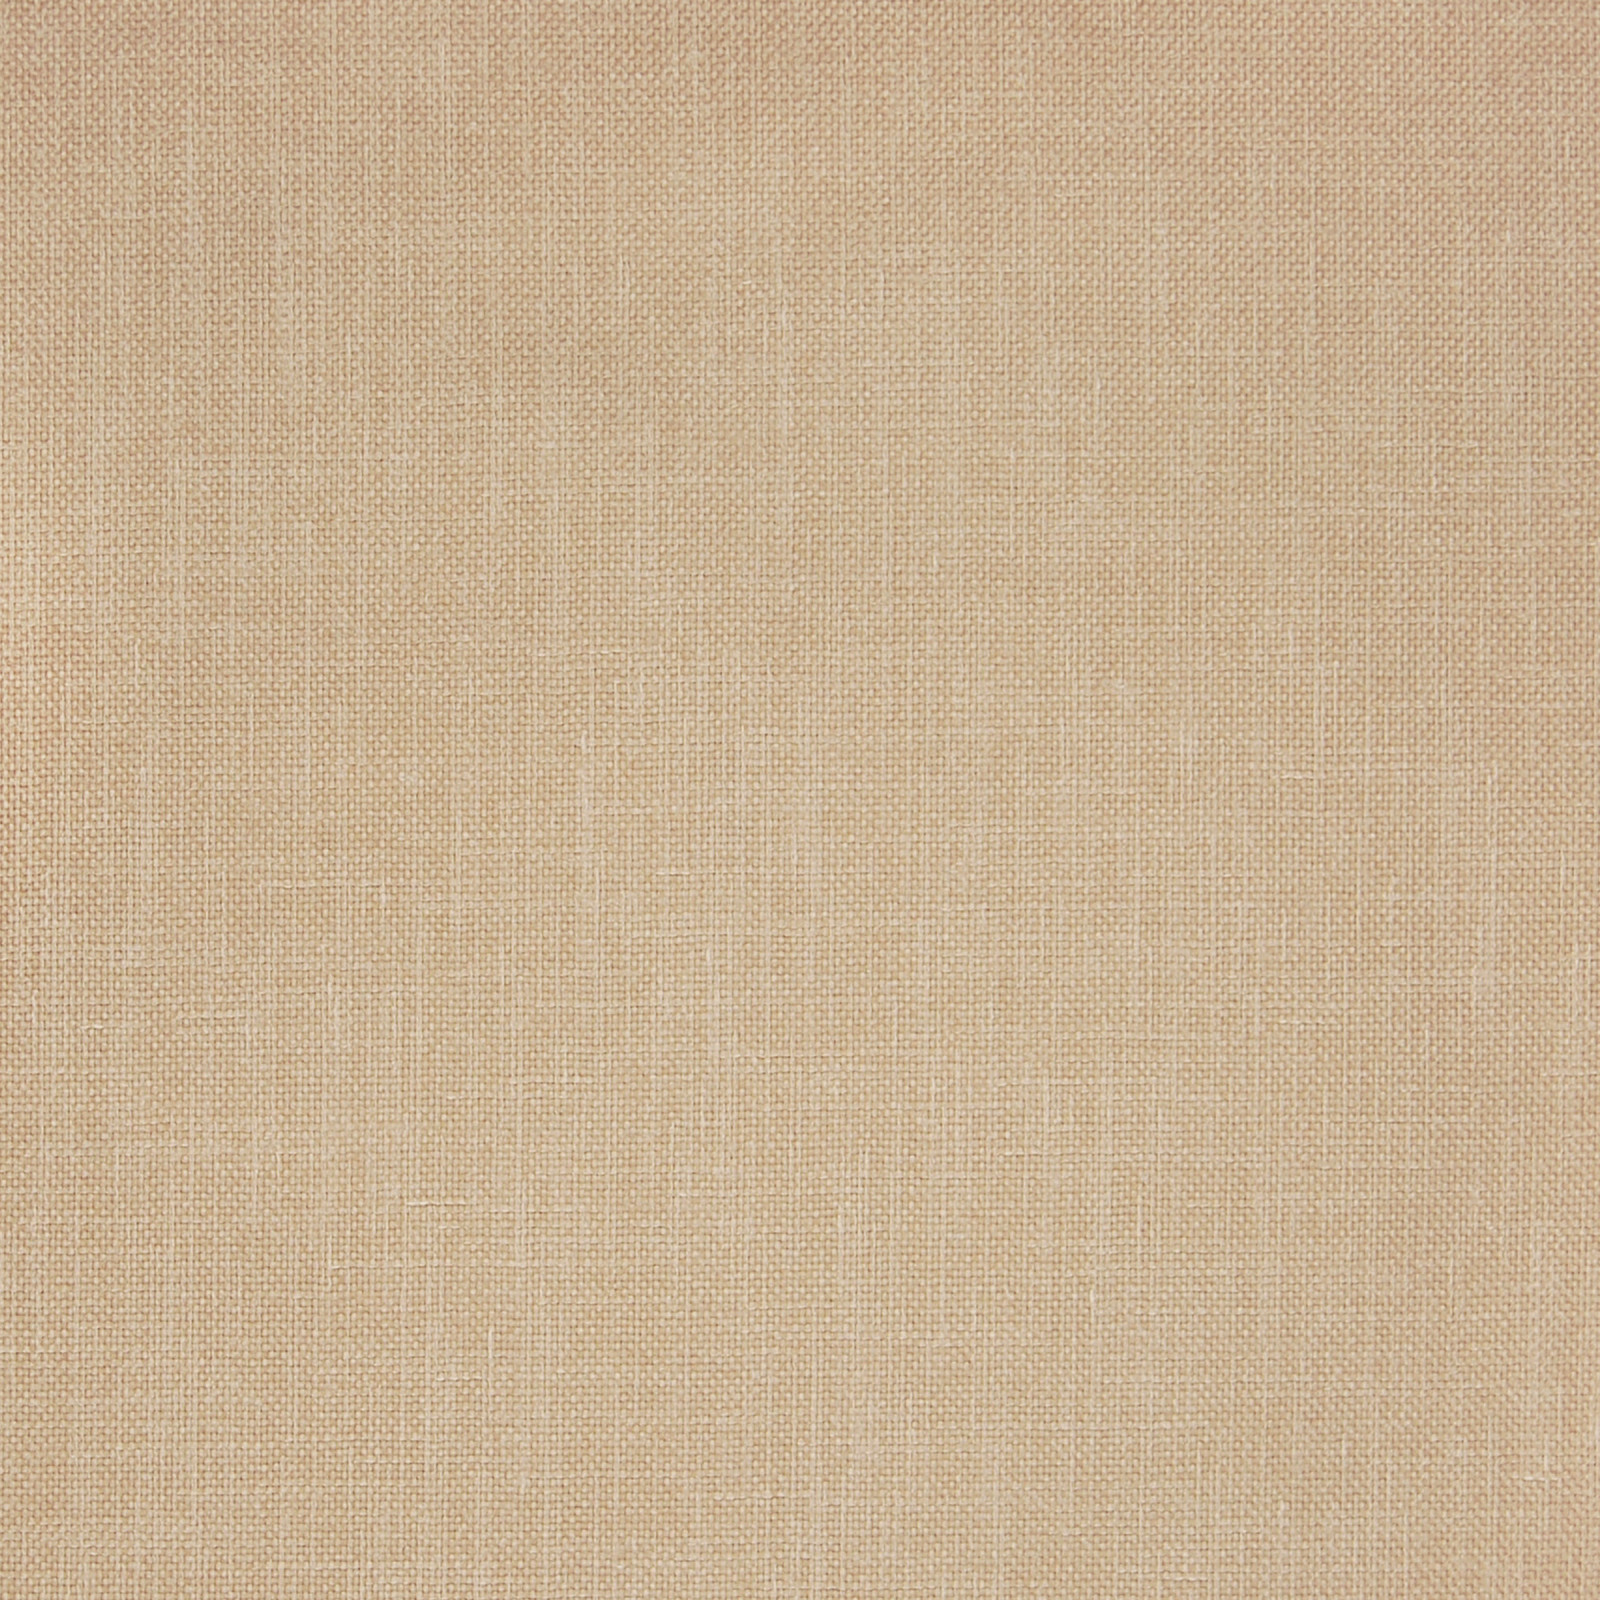 Perfect Finish Upholstery A9564 Chino Greenhouse Fabrics